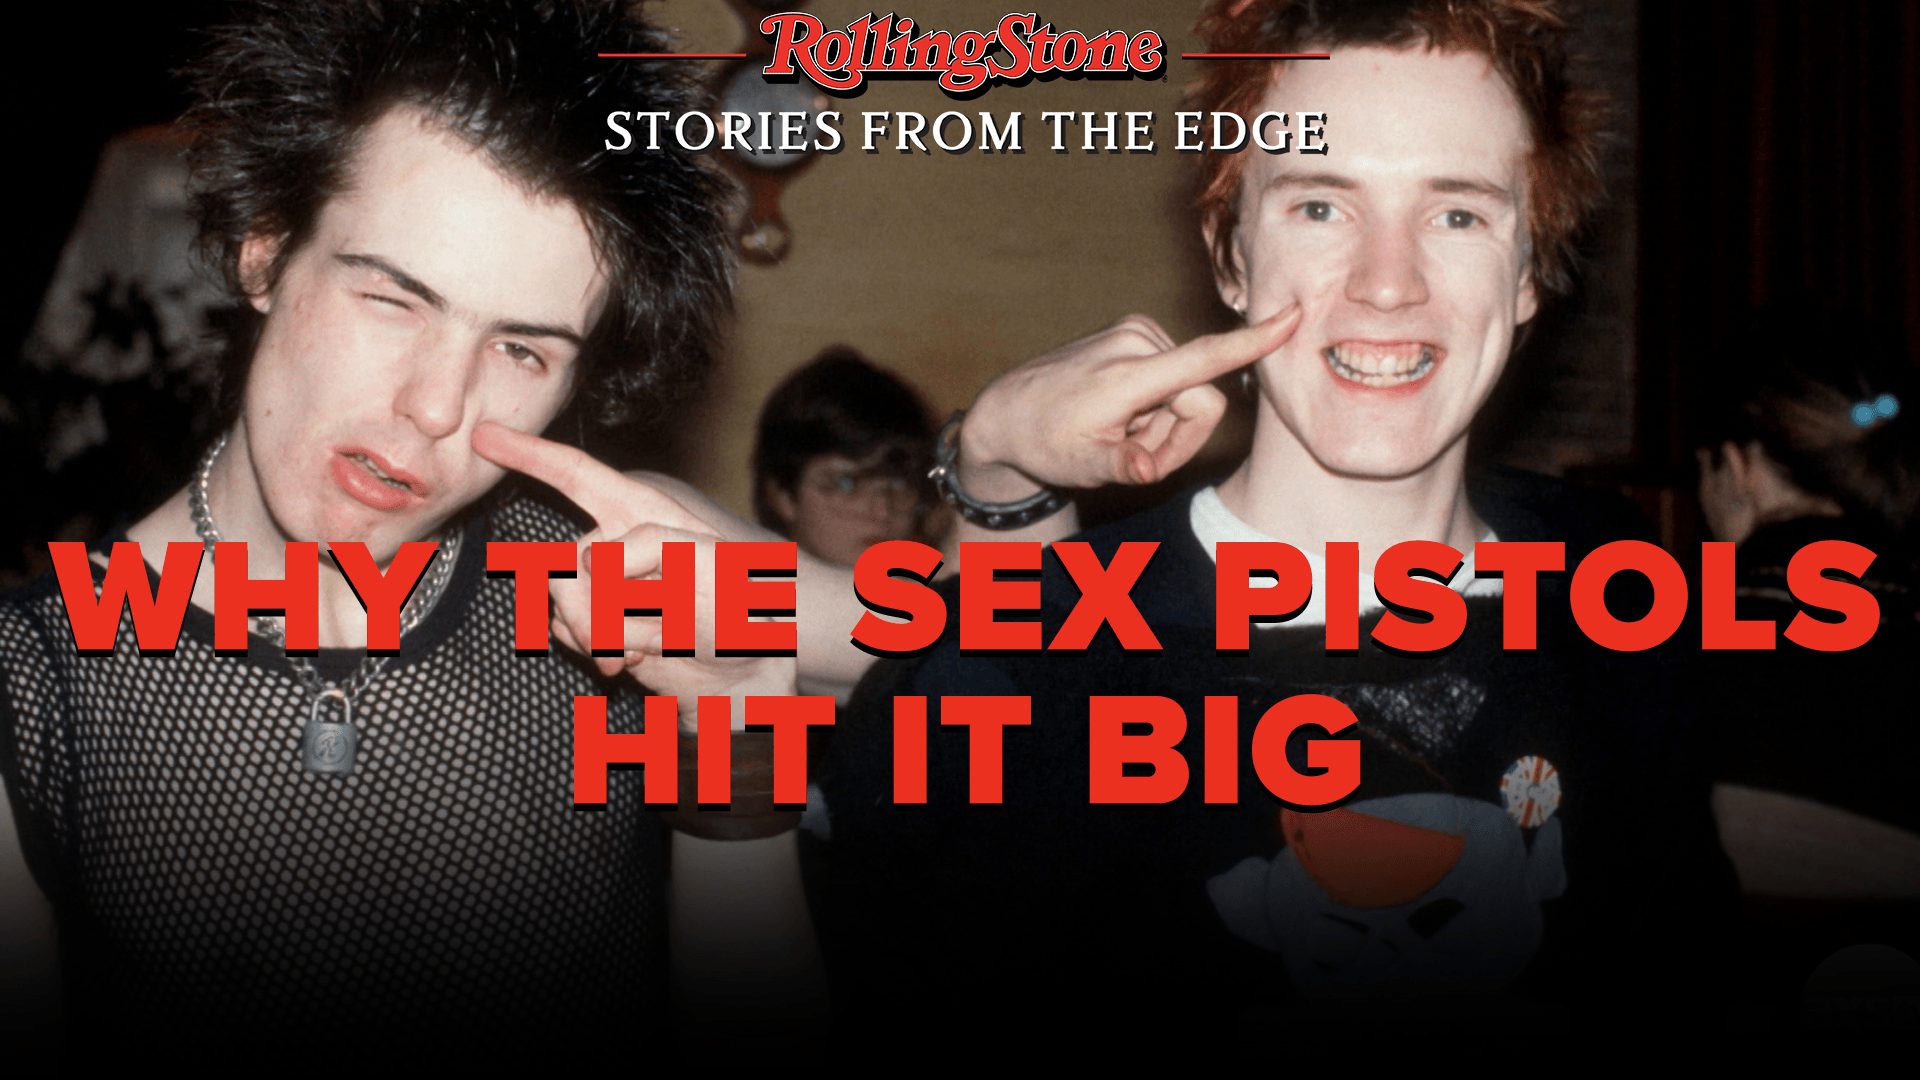 Why The Sex Pistols Hit It Big   Rolling Stone: Stories from the Edge